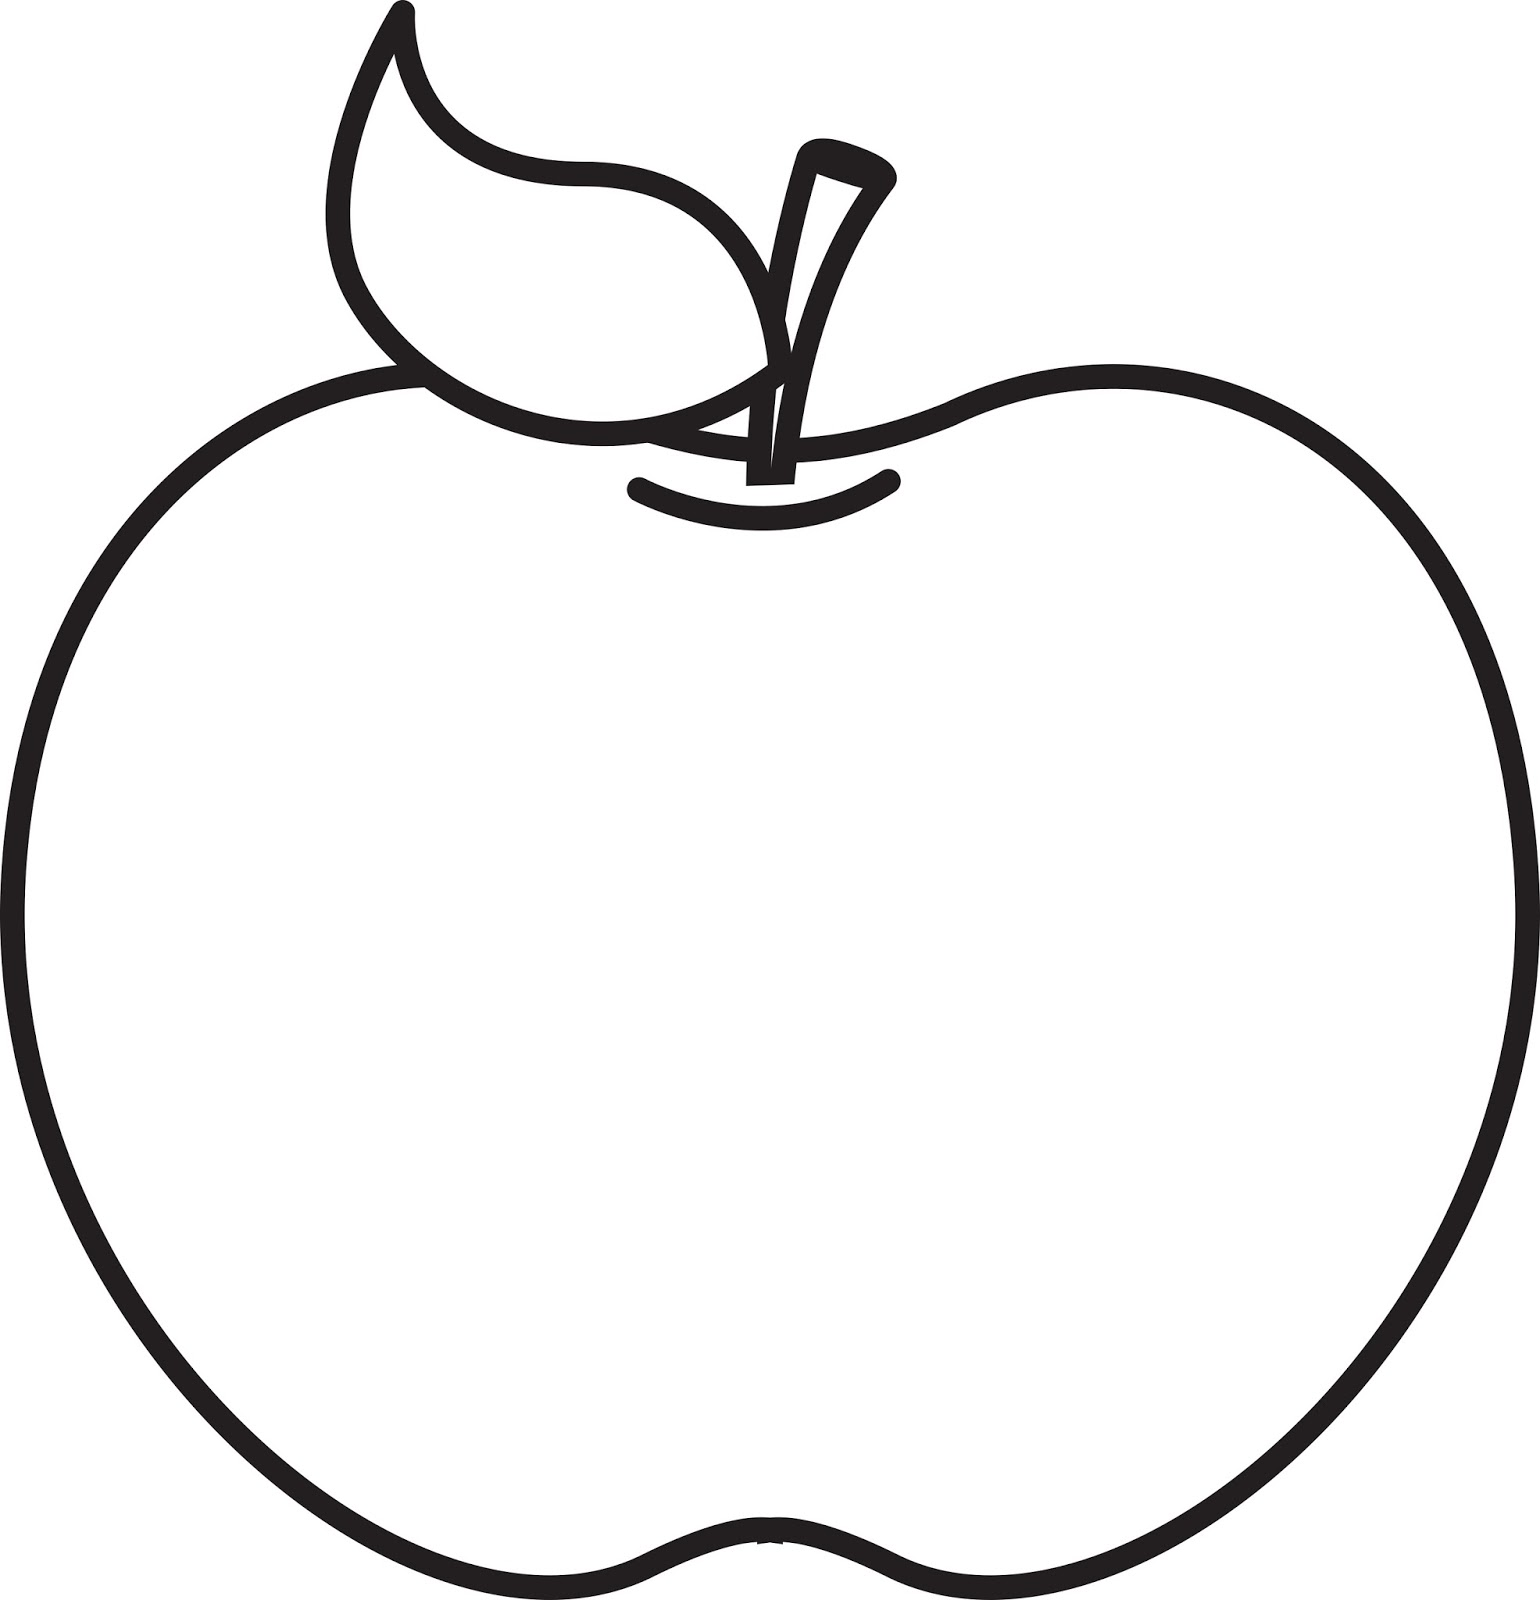 Guava clipart fruits and vegetable 2 black Cliparting Apple clip